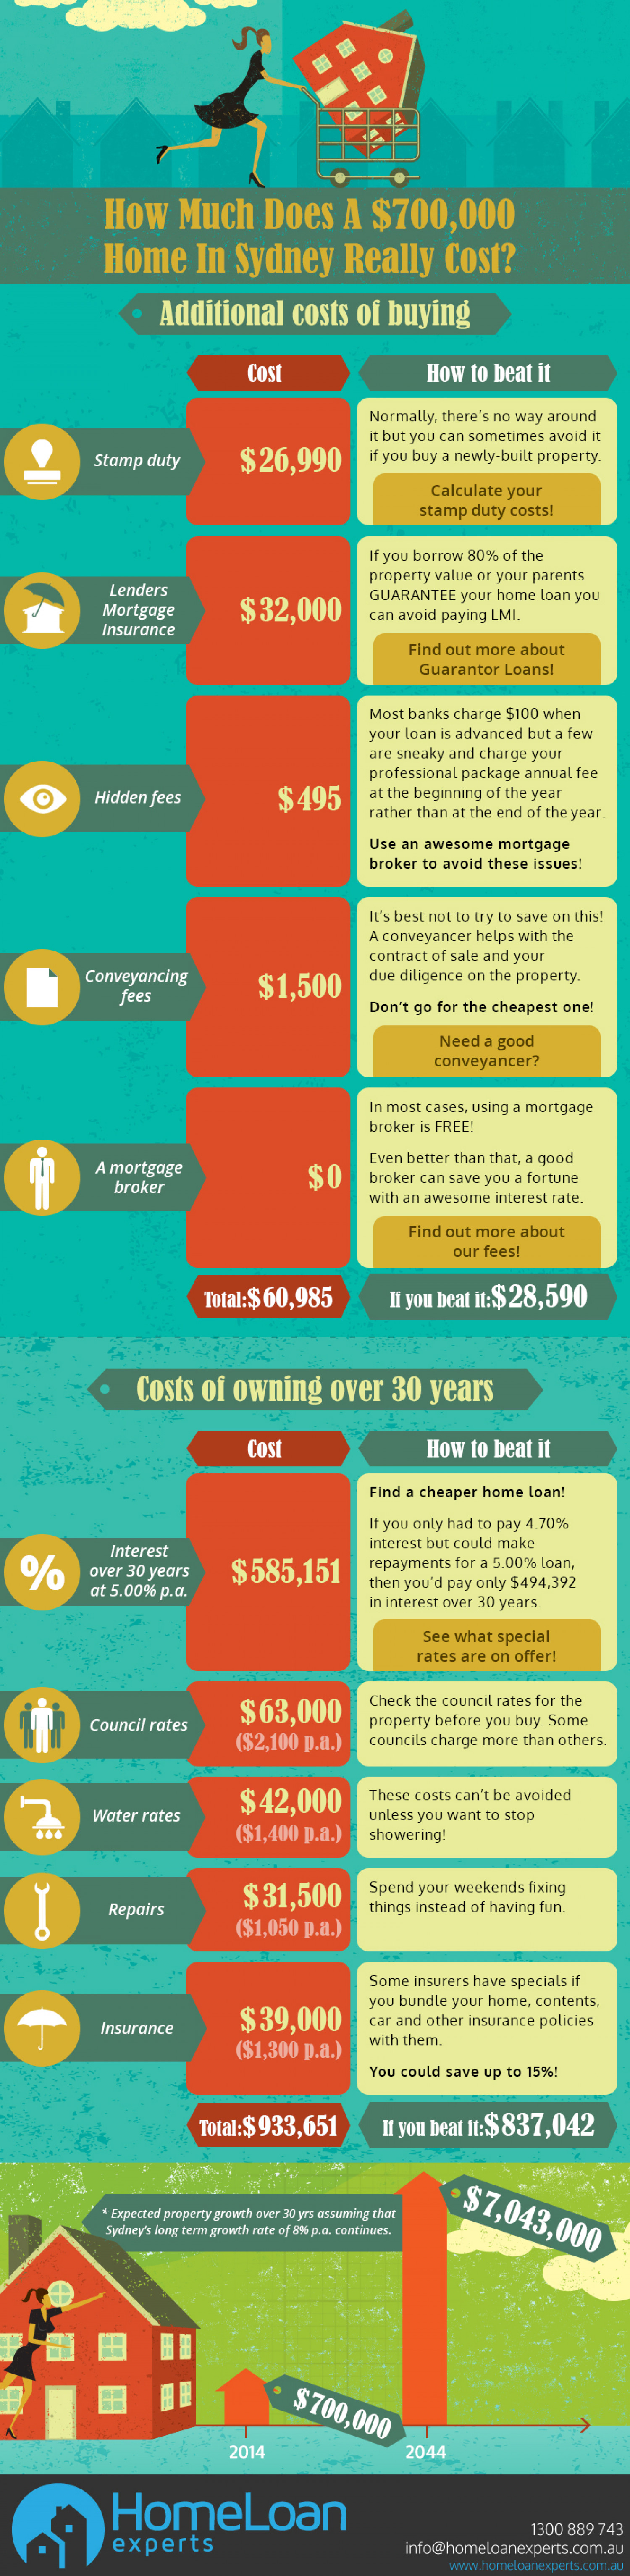 How Much Does A $700k Sydney Home Cost? Infographic